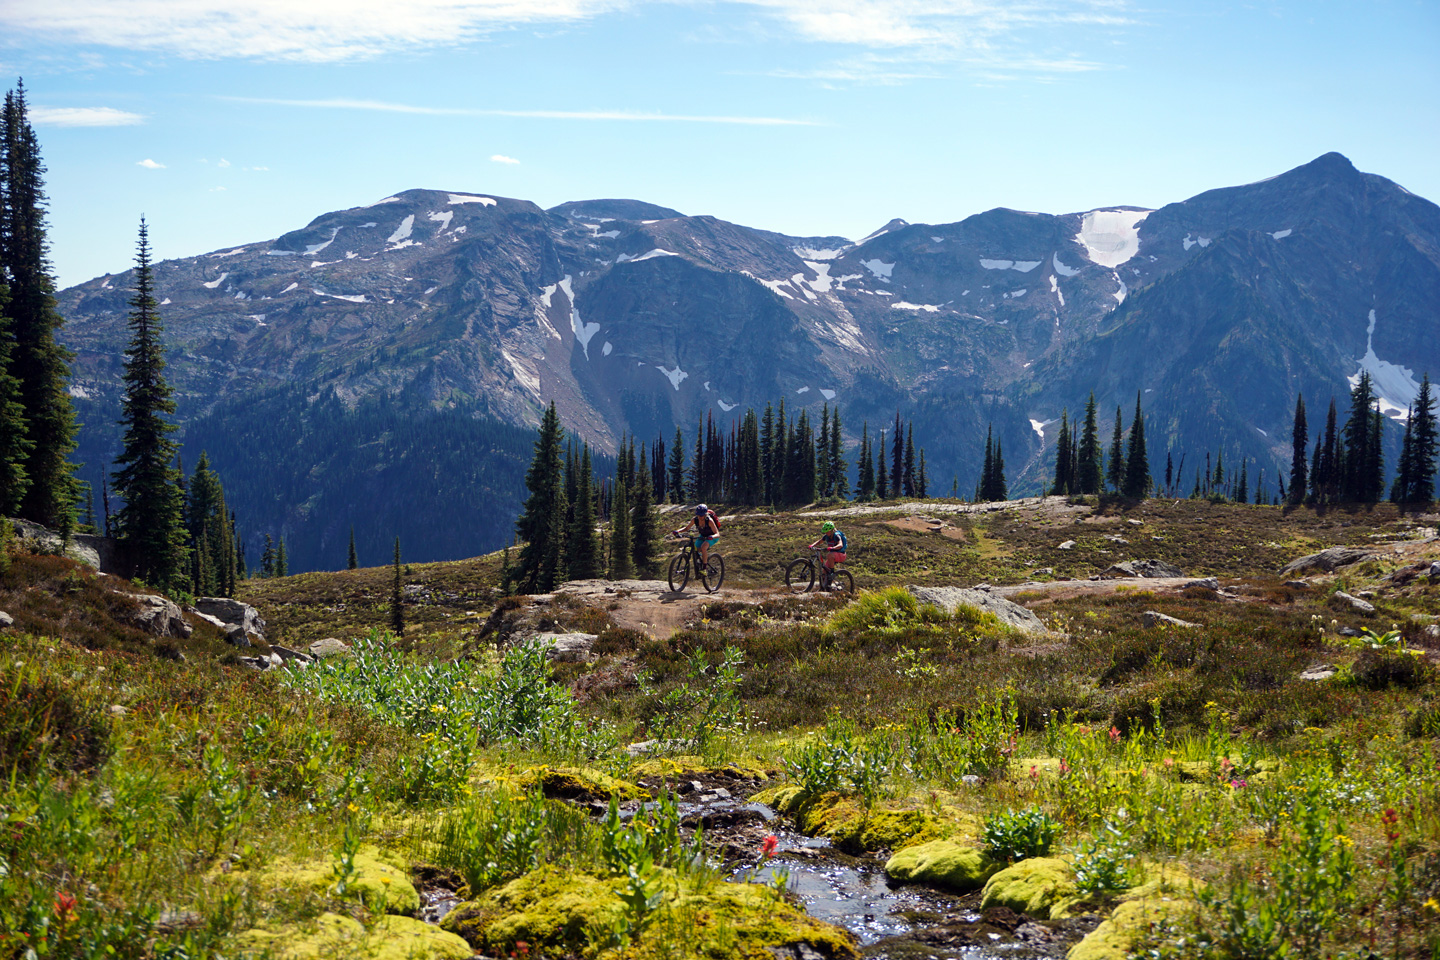 Classic views of the Monashees from the Caribou Pass trail. Photo by Lisa Ankeny